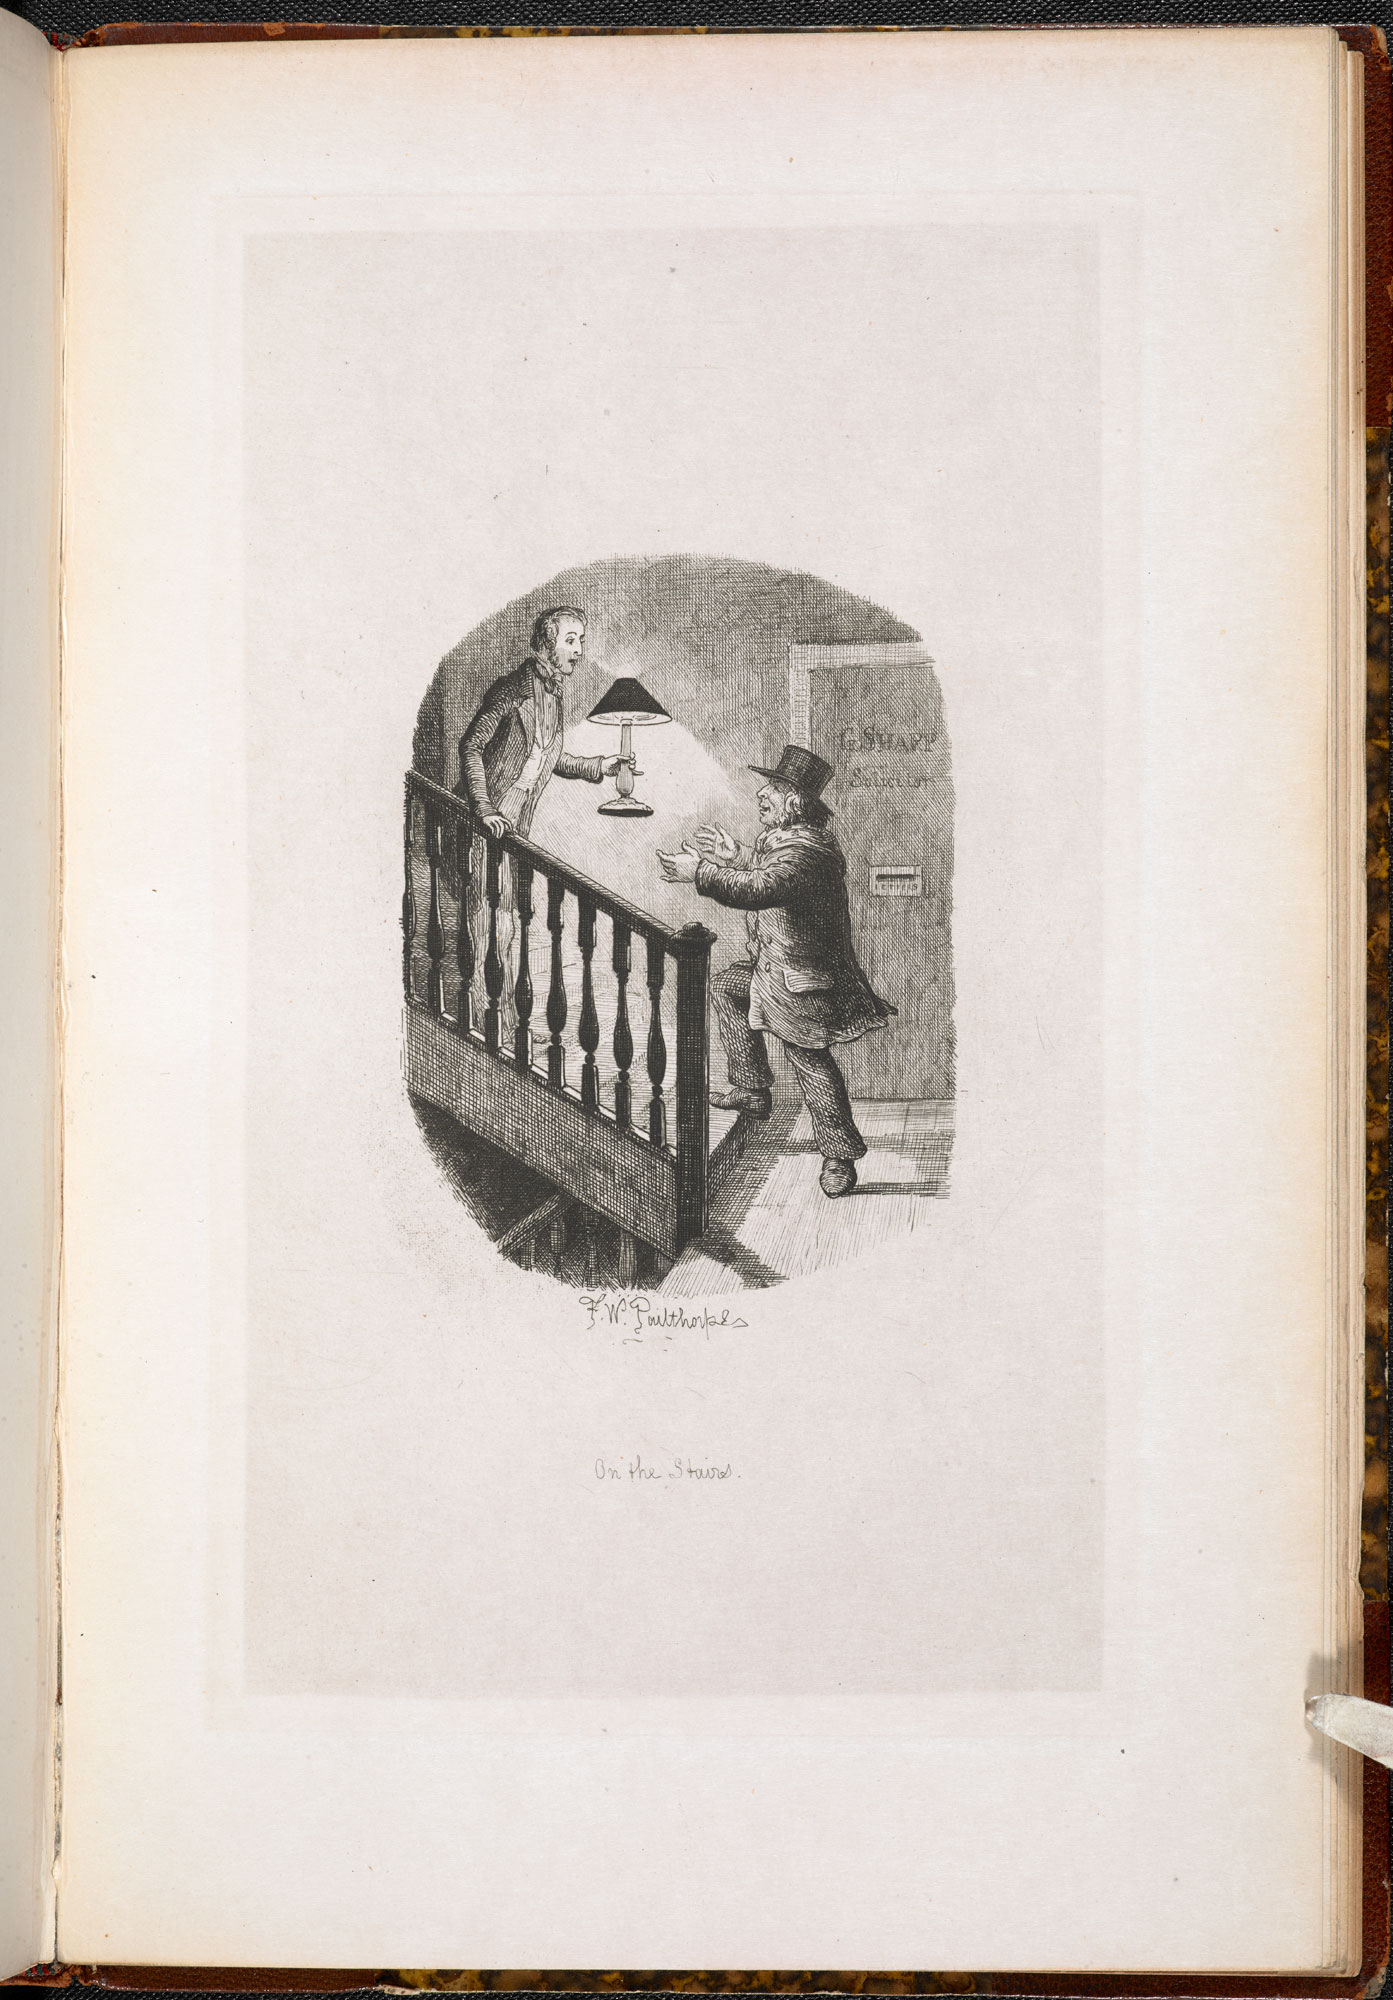 F W Pailthorpe's illustrations to Great Expectations [page: 14]